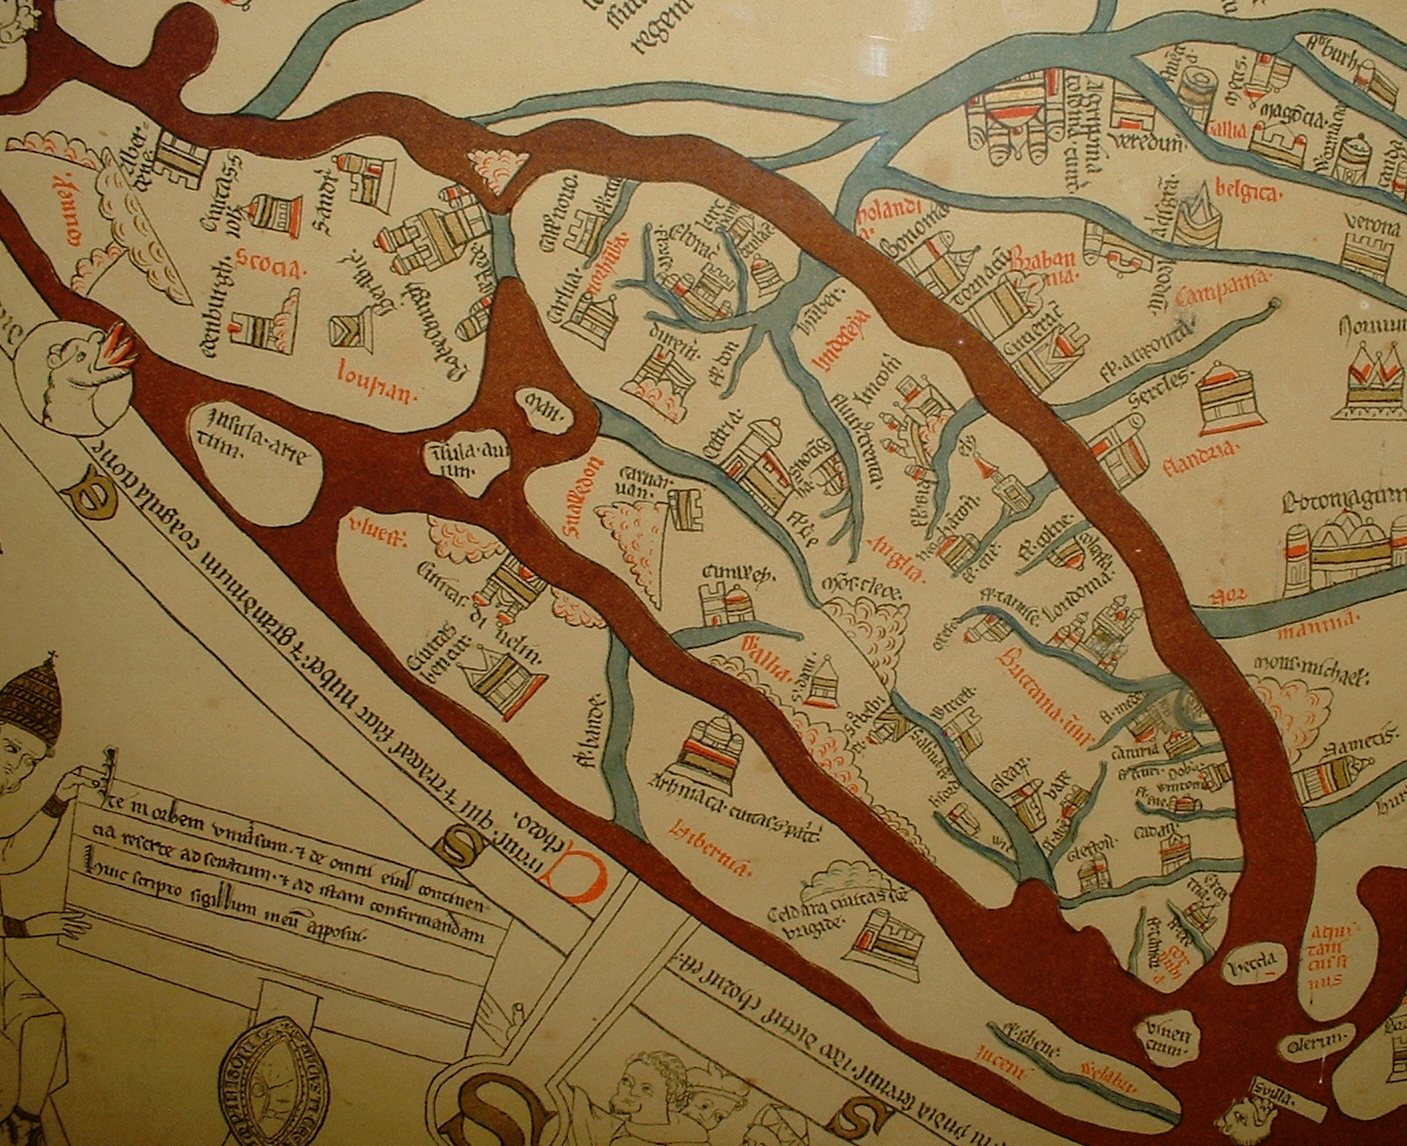 the mappa mundi meaning cloth of the world has spent most of its long life at hereford cathedral rarely emerging from behind its glass case